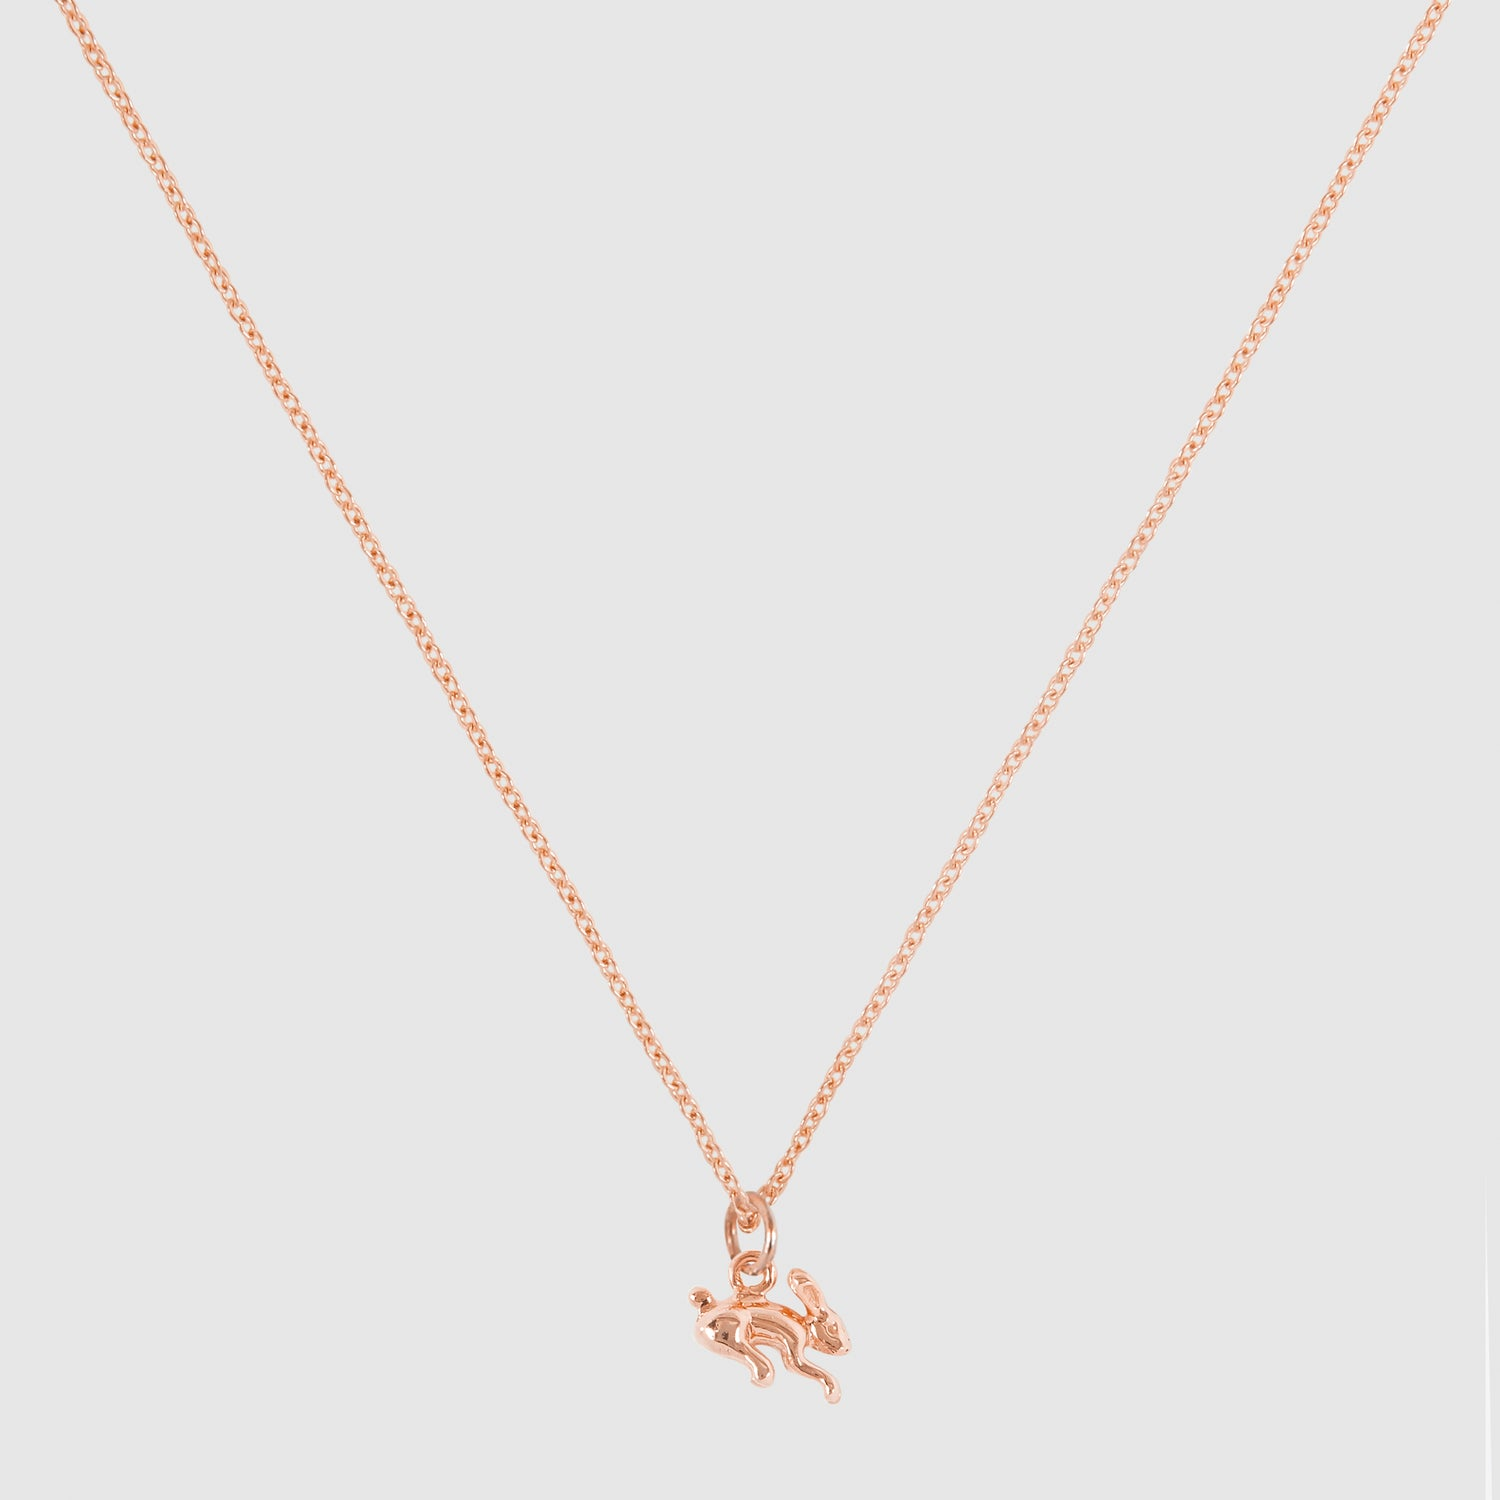 Tiny Rabbit Necklace